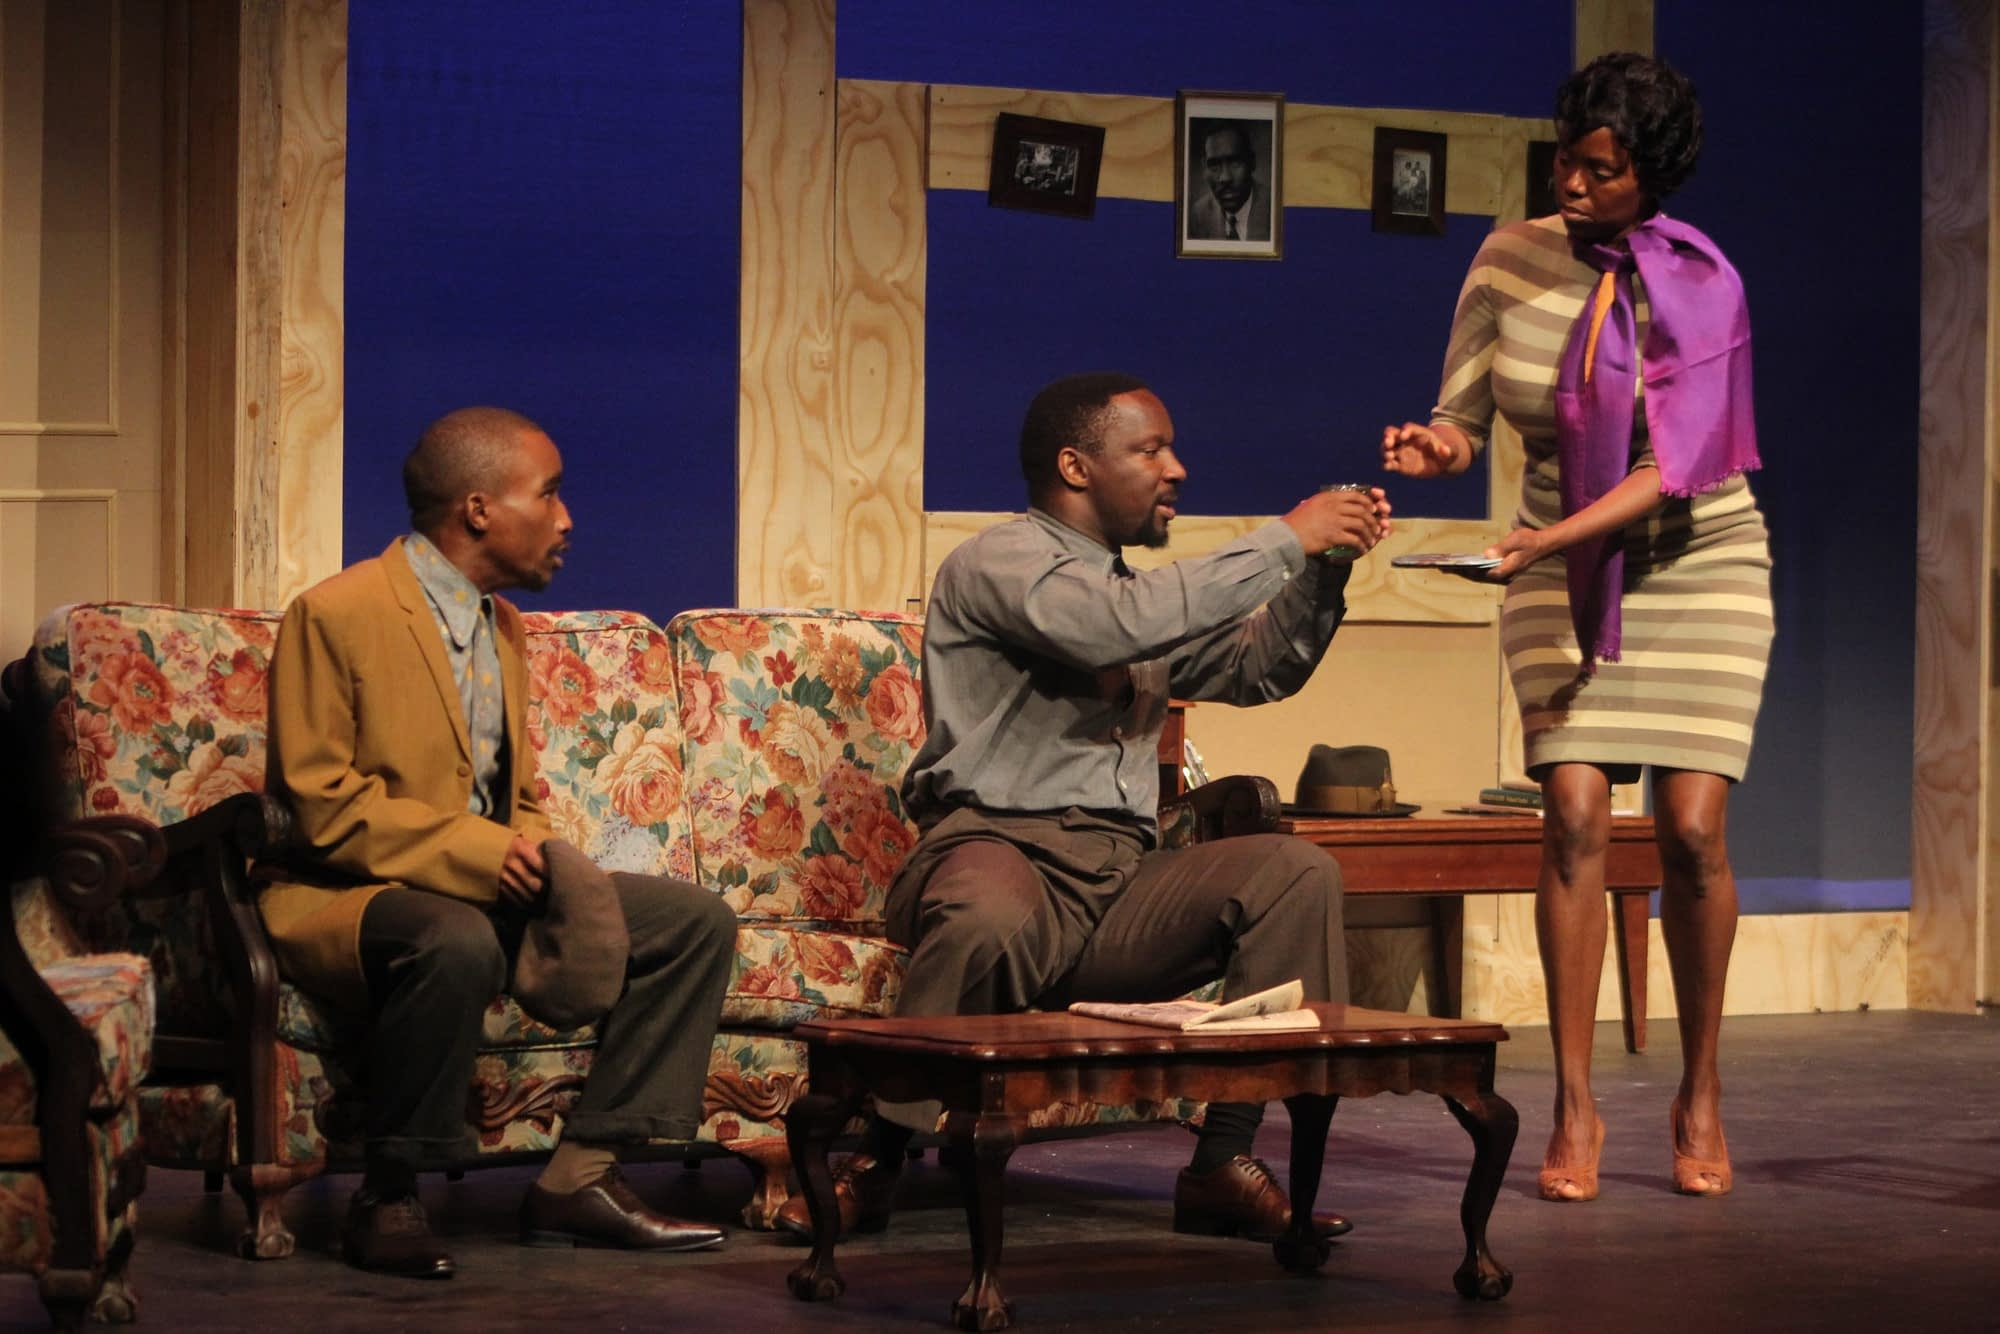 A Raisin In The Sun was part of the City of Johannesburg's Arts Alive programme and Heritage Month celebrations (photos by Tumi Moloi)